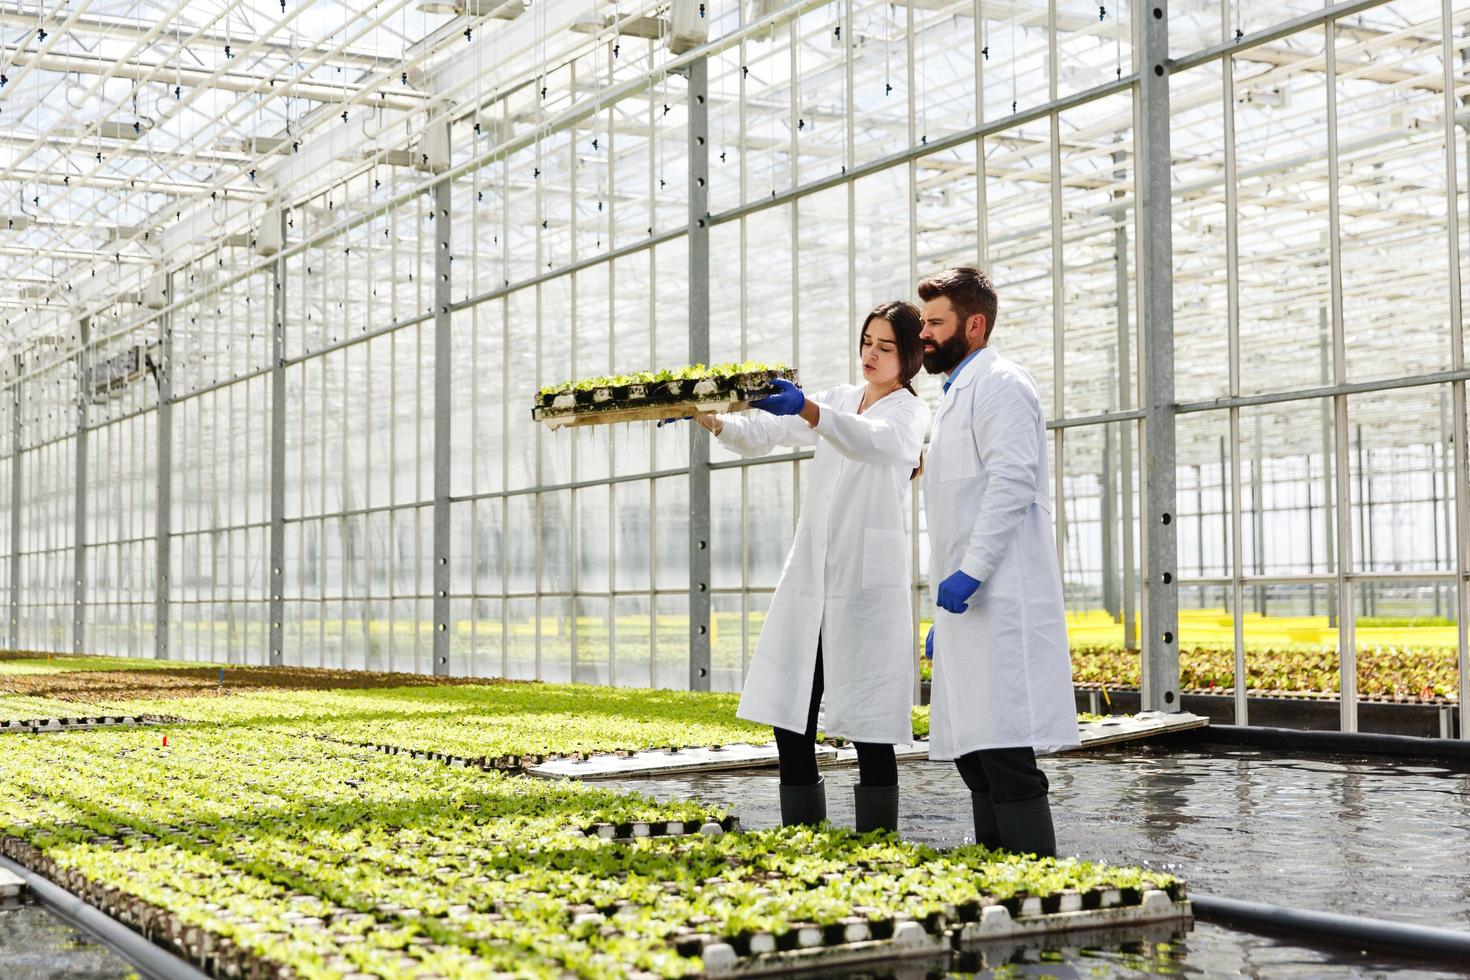 Man and woman in laboratory robes work with plants in a greenhouse photo